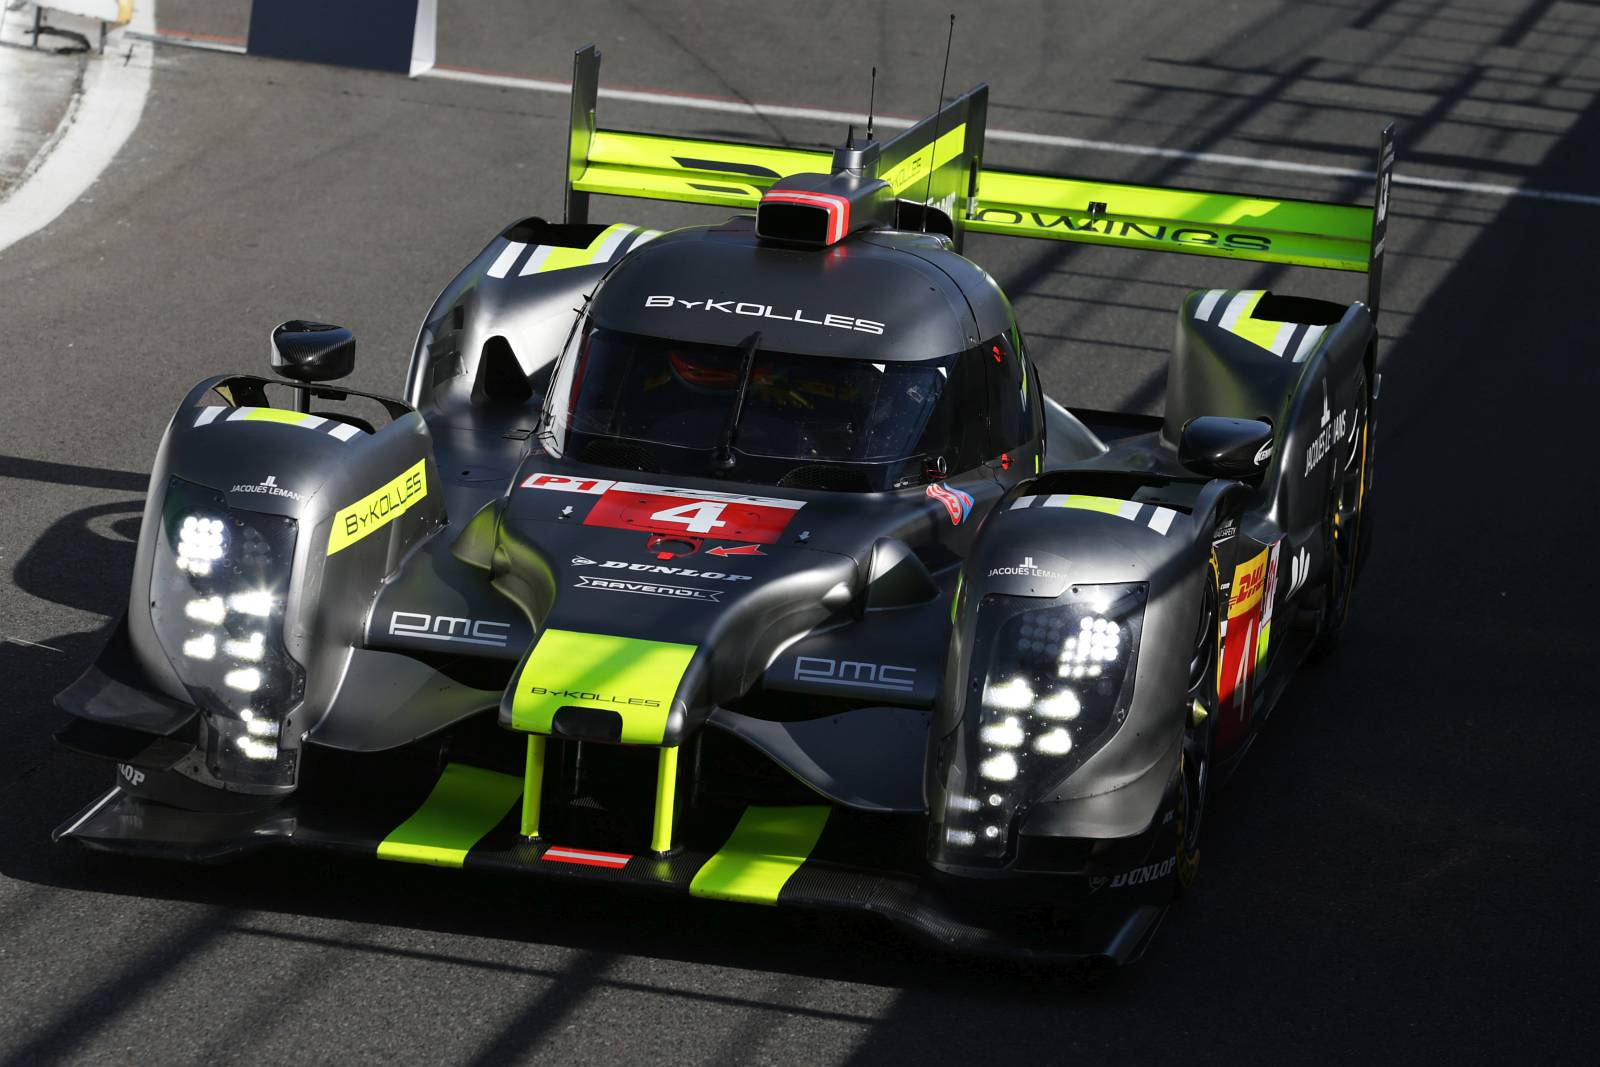 byKOLLES-racing-WEC-spa-2016-017